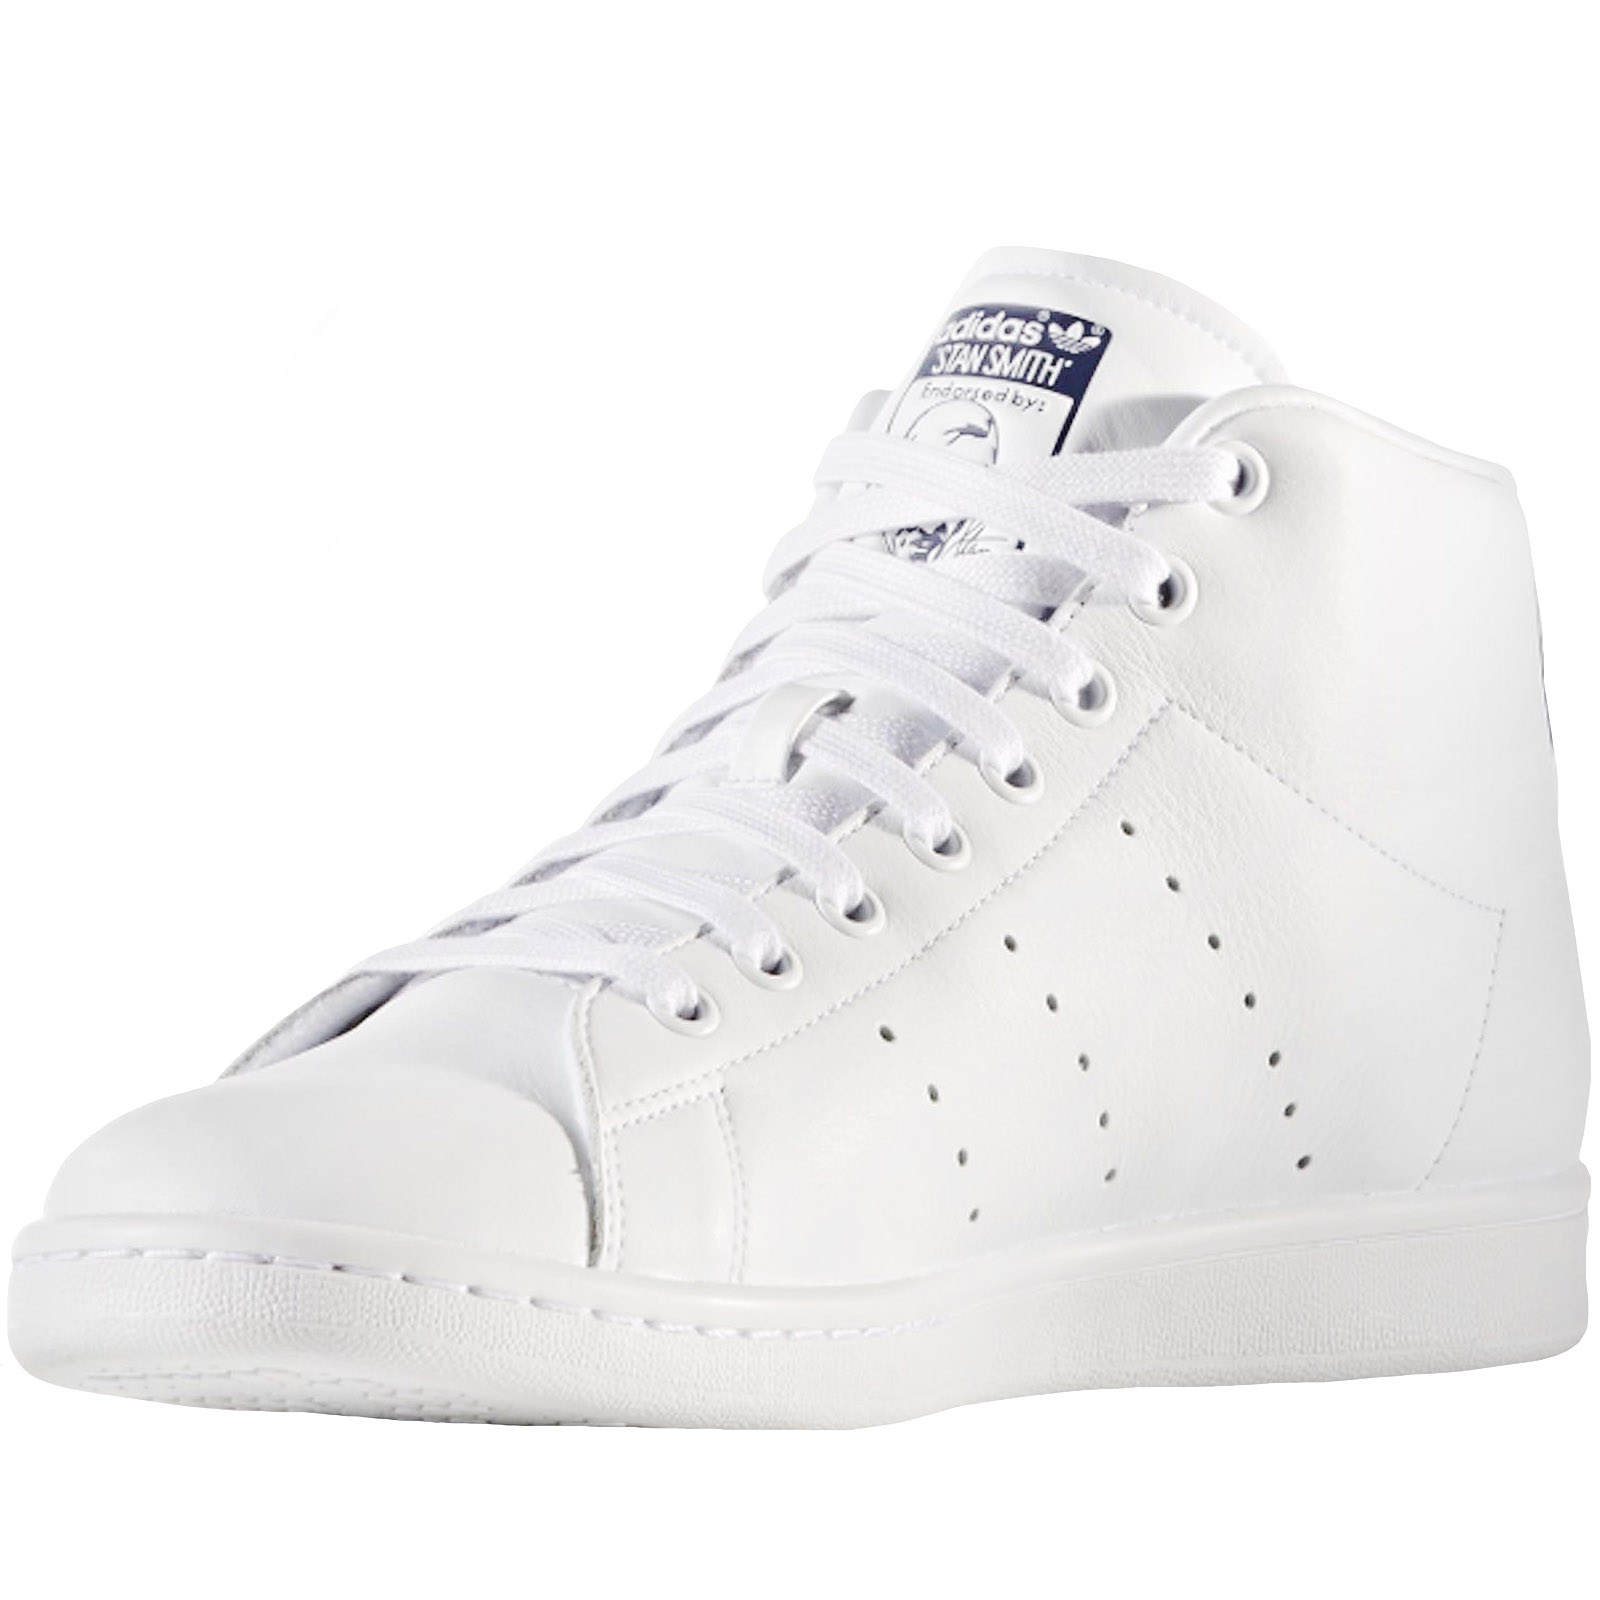 adidas-Originals-Mens-Stan-Smith-Mid-Rise-Casual-Lace-Up-Trainers-Sneakers-Shoes thumbnail 7